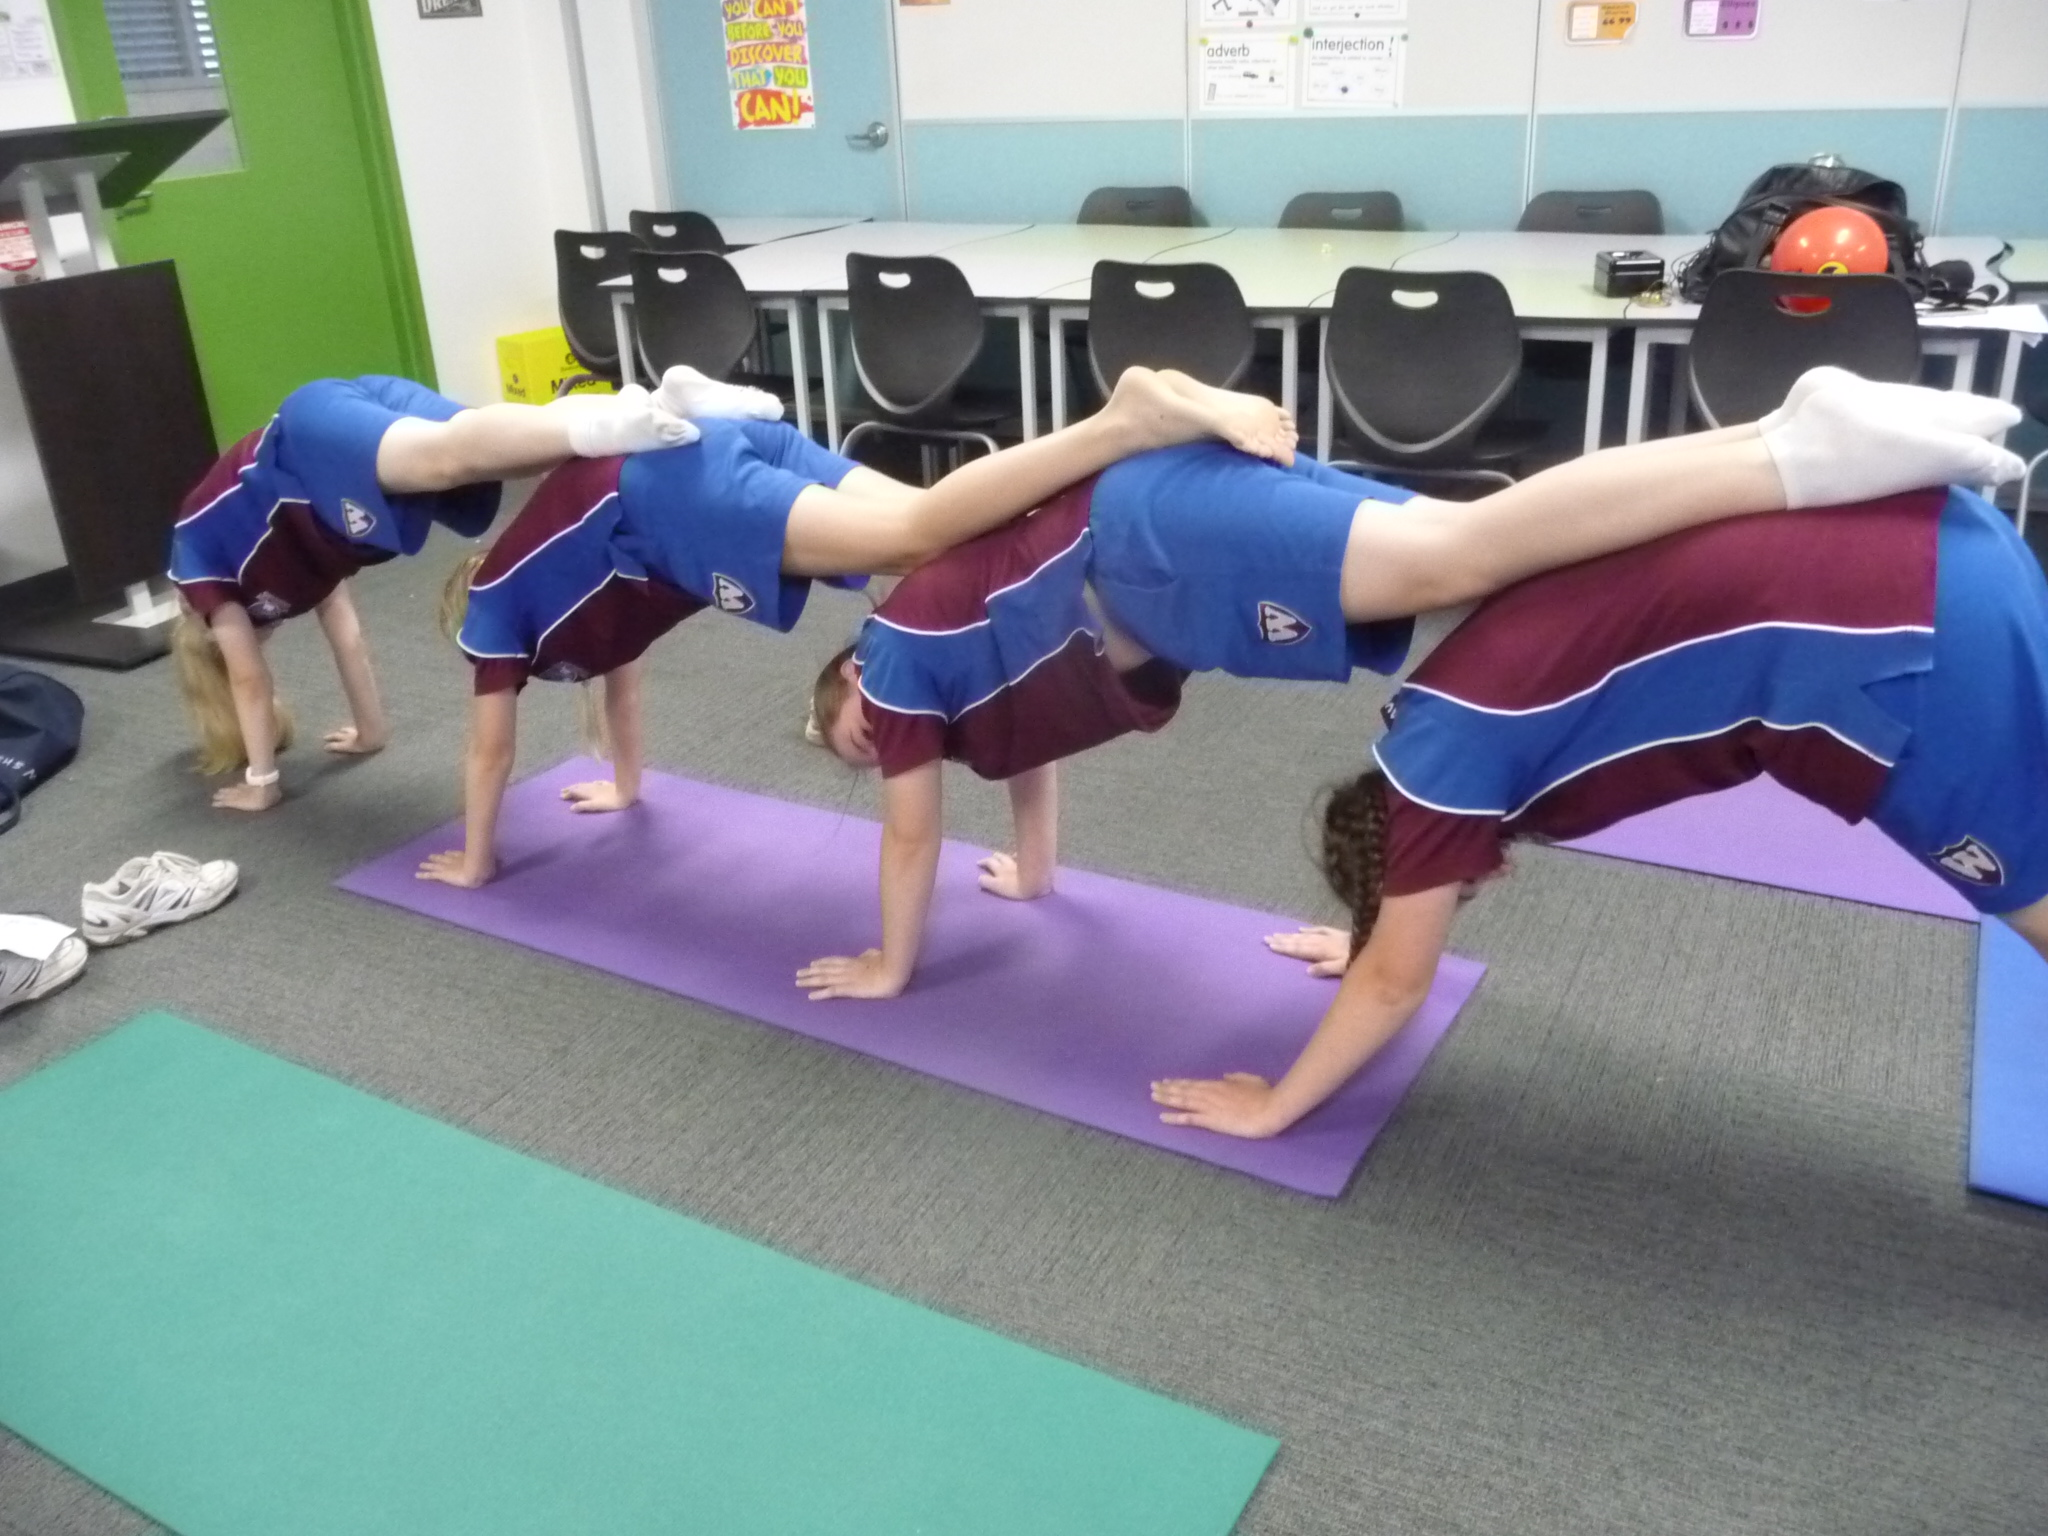 Quadruple downward dog - go girls!!